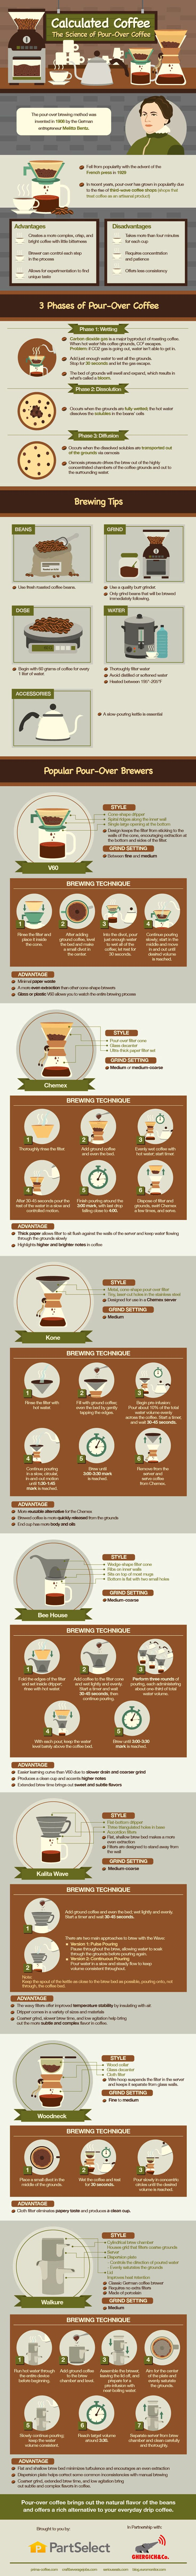 Best 25 Pour over coffee ideas on Pinterest